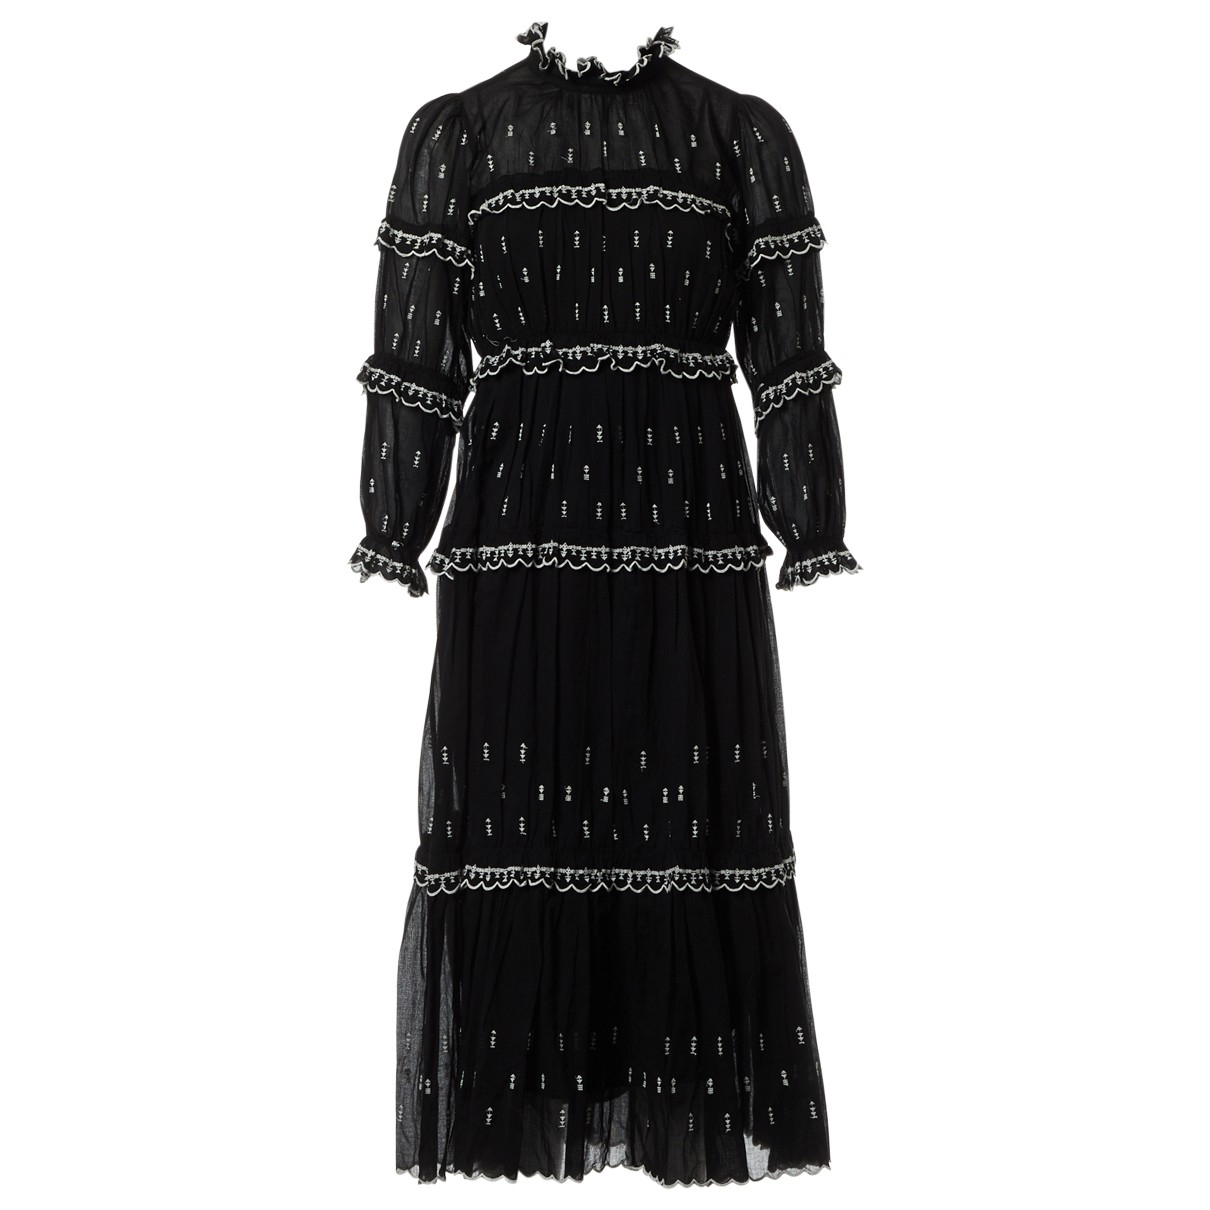 Isabel Marant Etoile \N Black Cotton dress for Women 36 FR